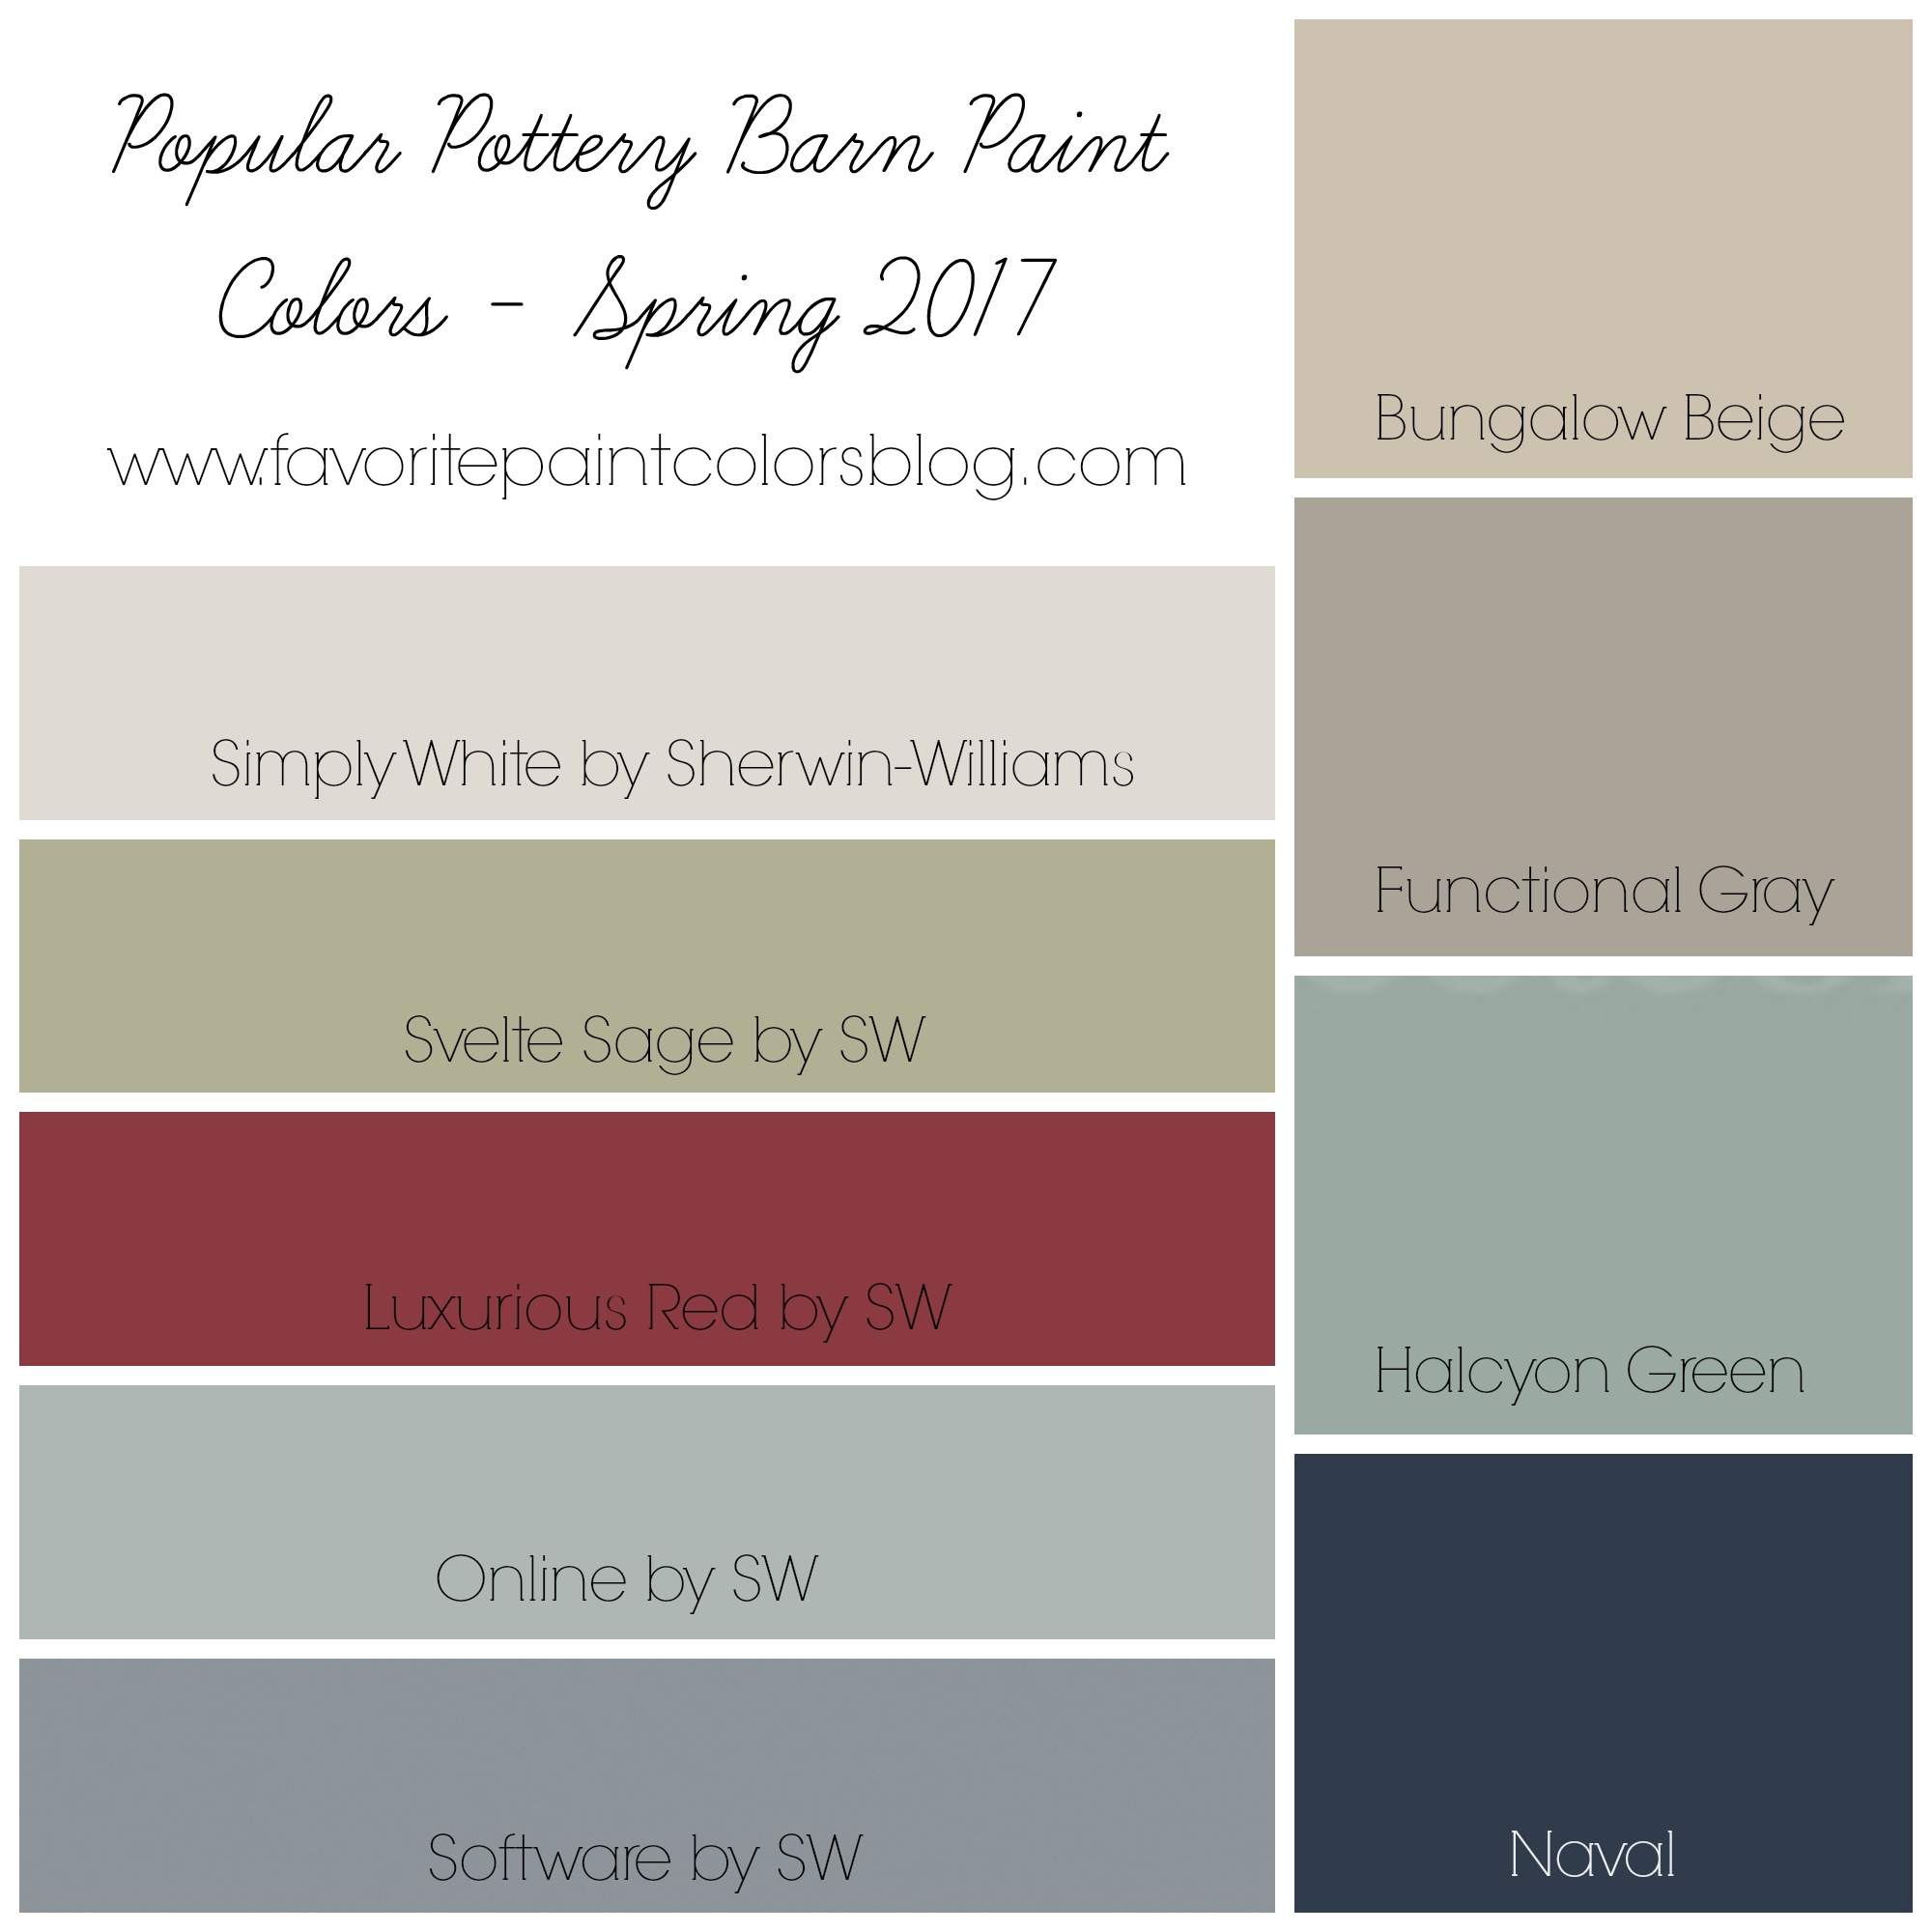 Most Popular Paint Colors Fair Popular Pottery Barn Paint Colors  Favorite Paint Colors Blog Review